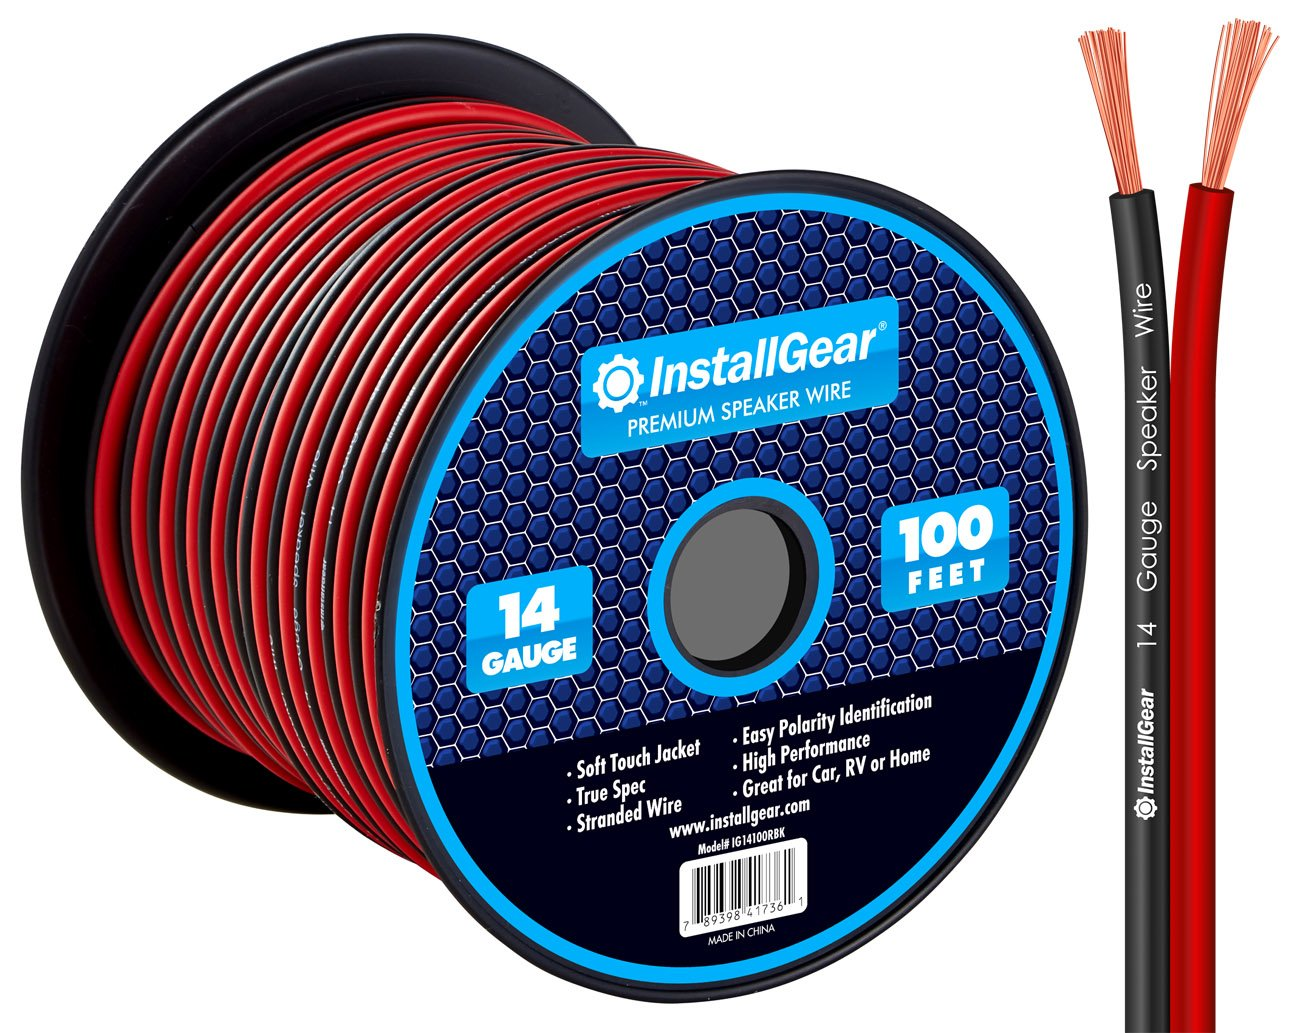 InstallGear 14 Gauge AWG 100ft Speaker Wire Cable - Red/Black by InstallGear